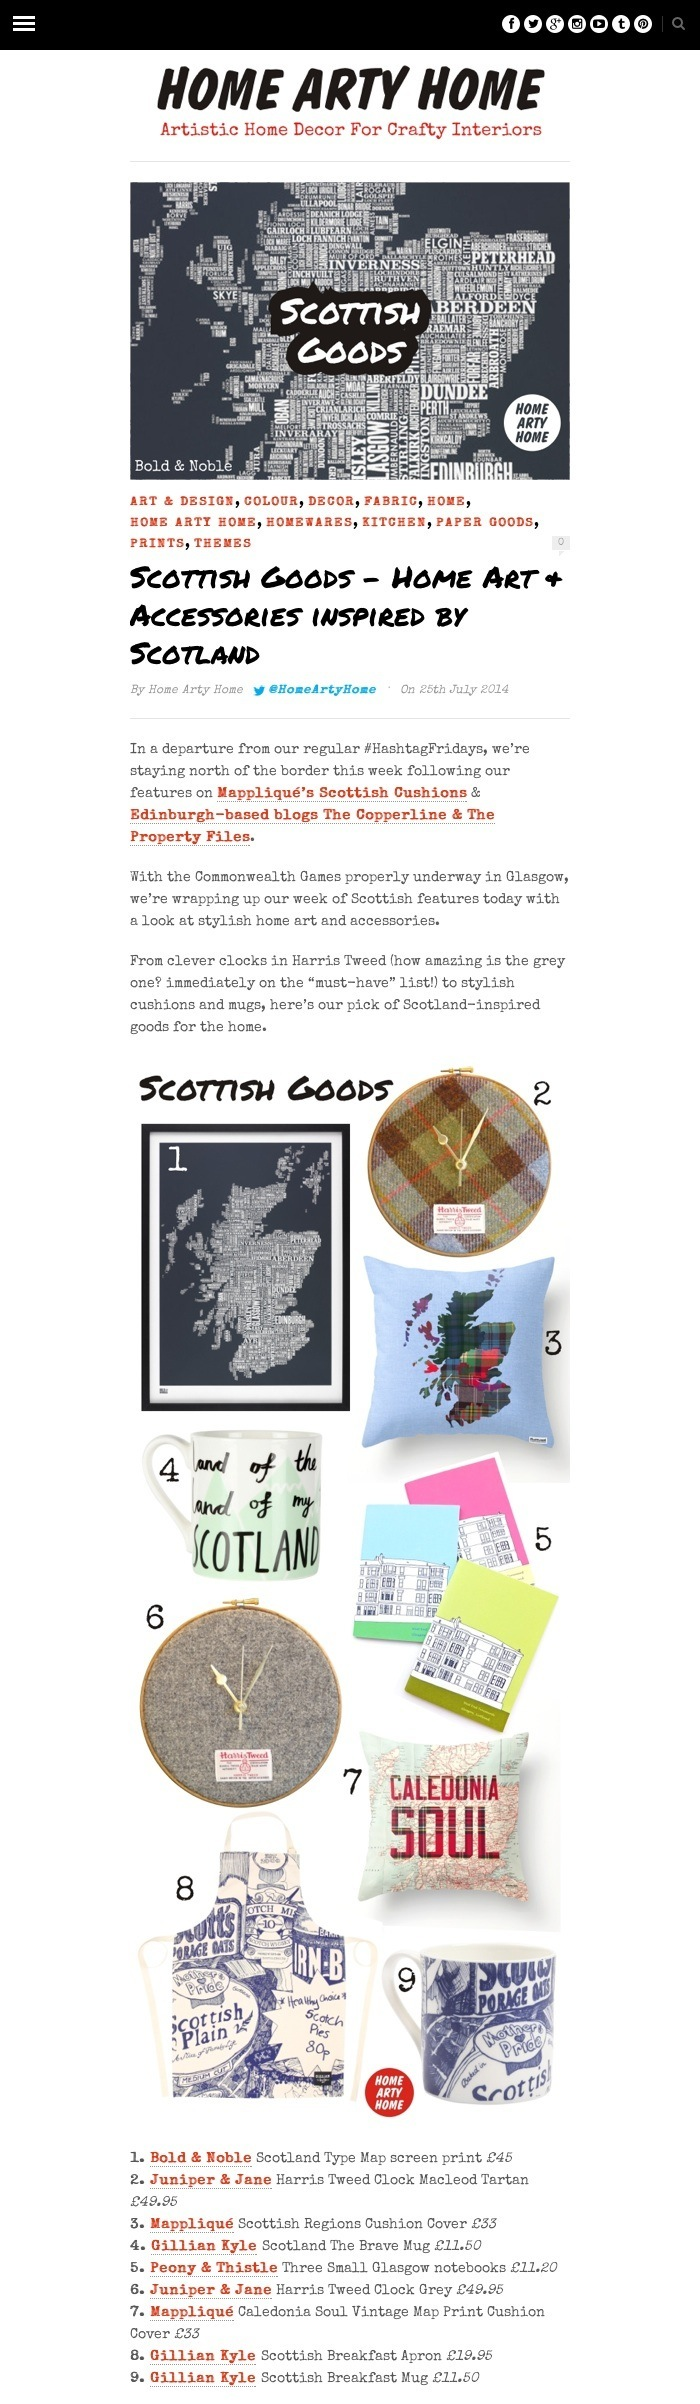 Scottish Goods Home Arty Home